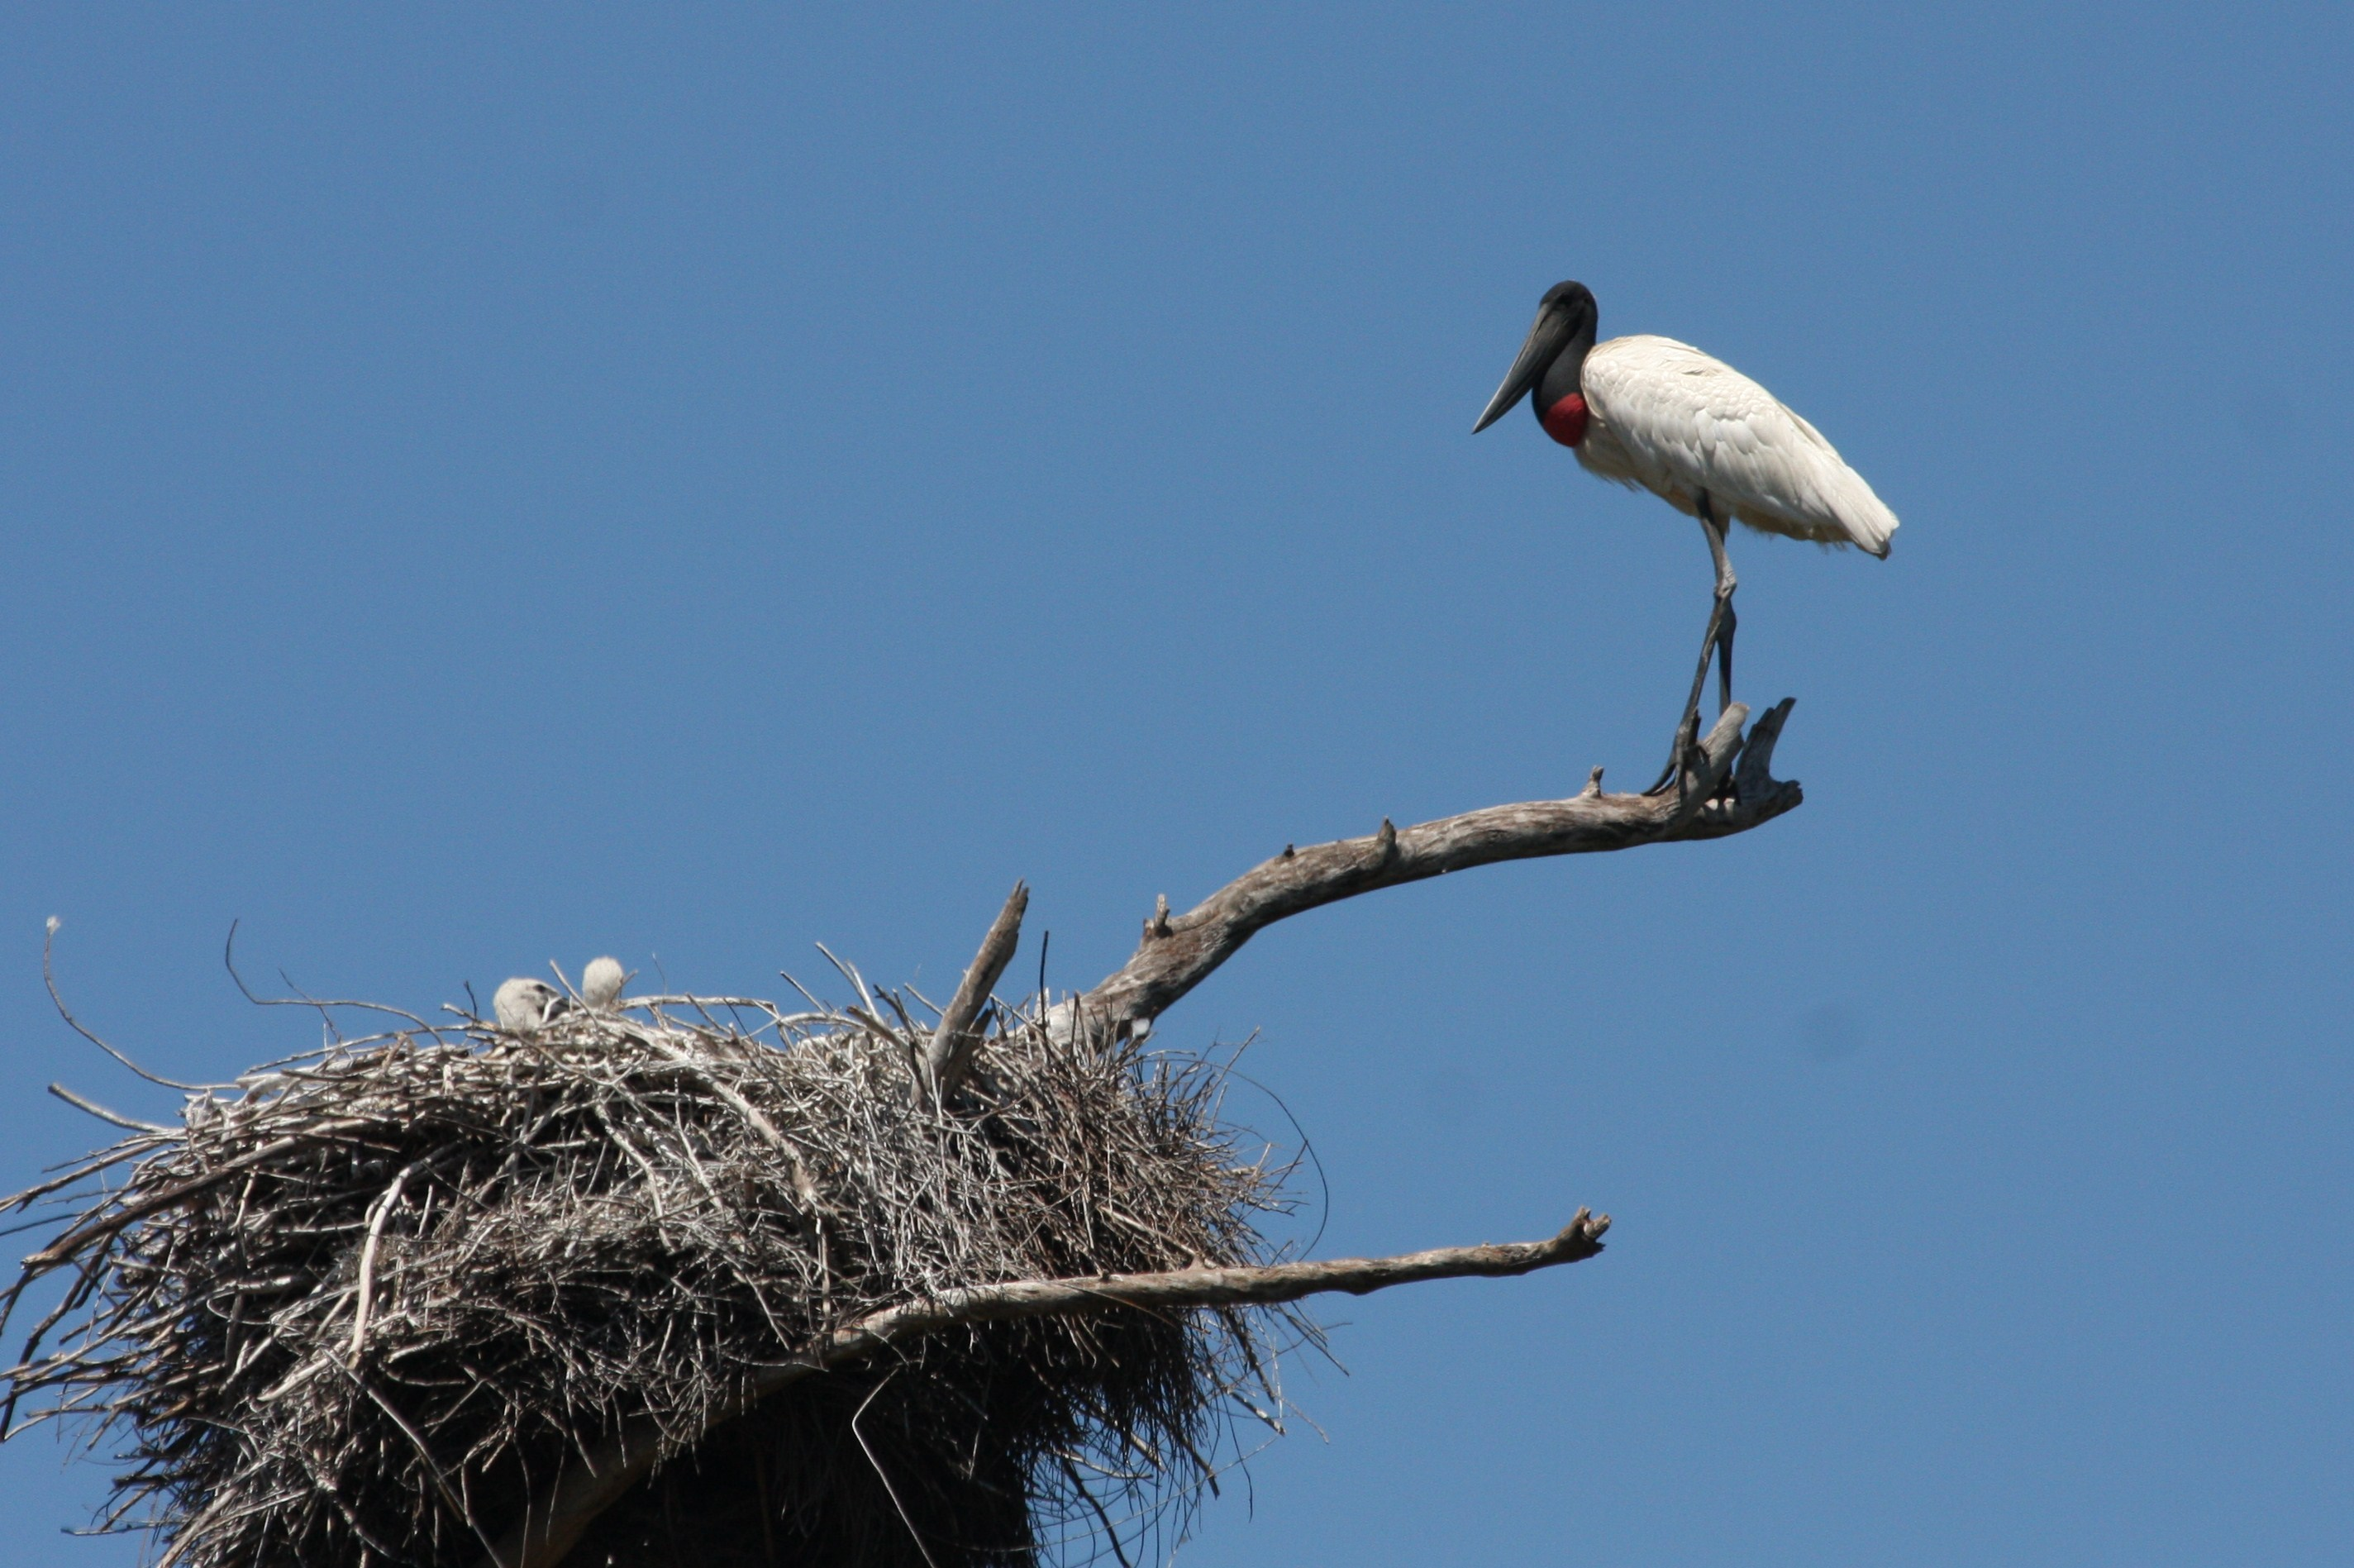 Jabiru nest with 2 young